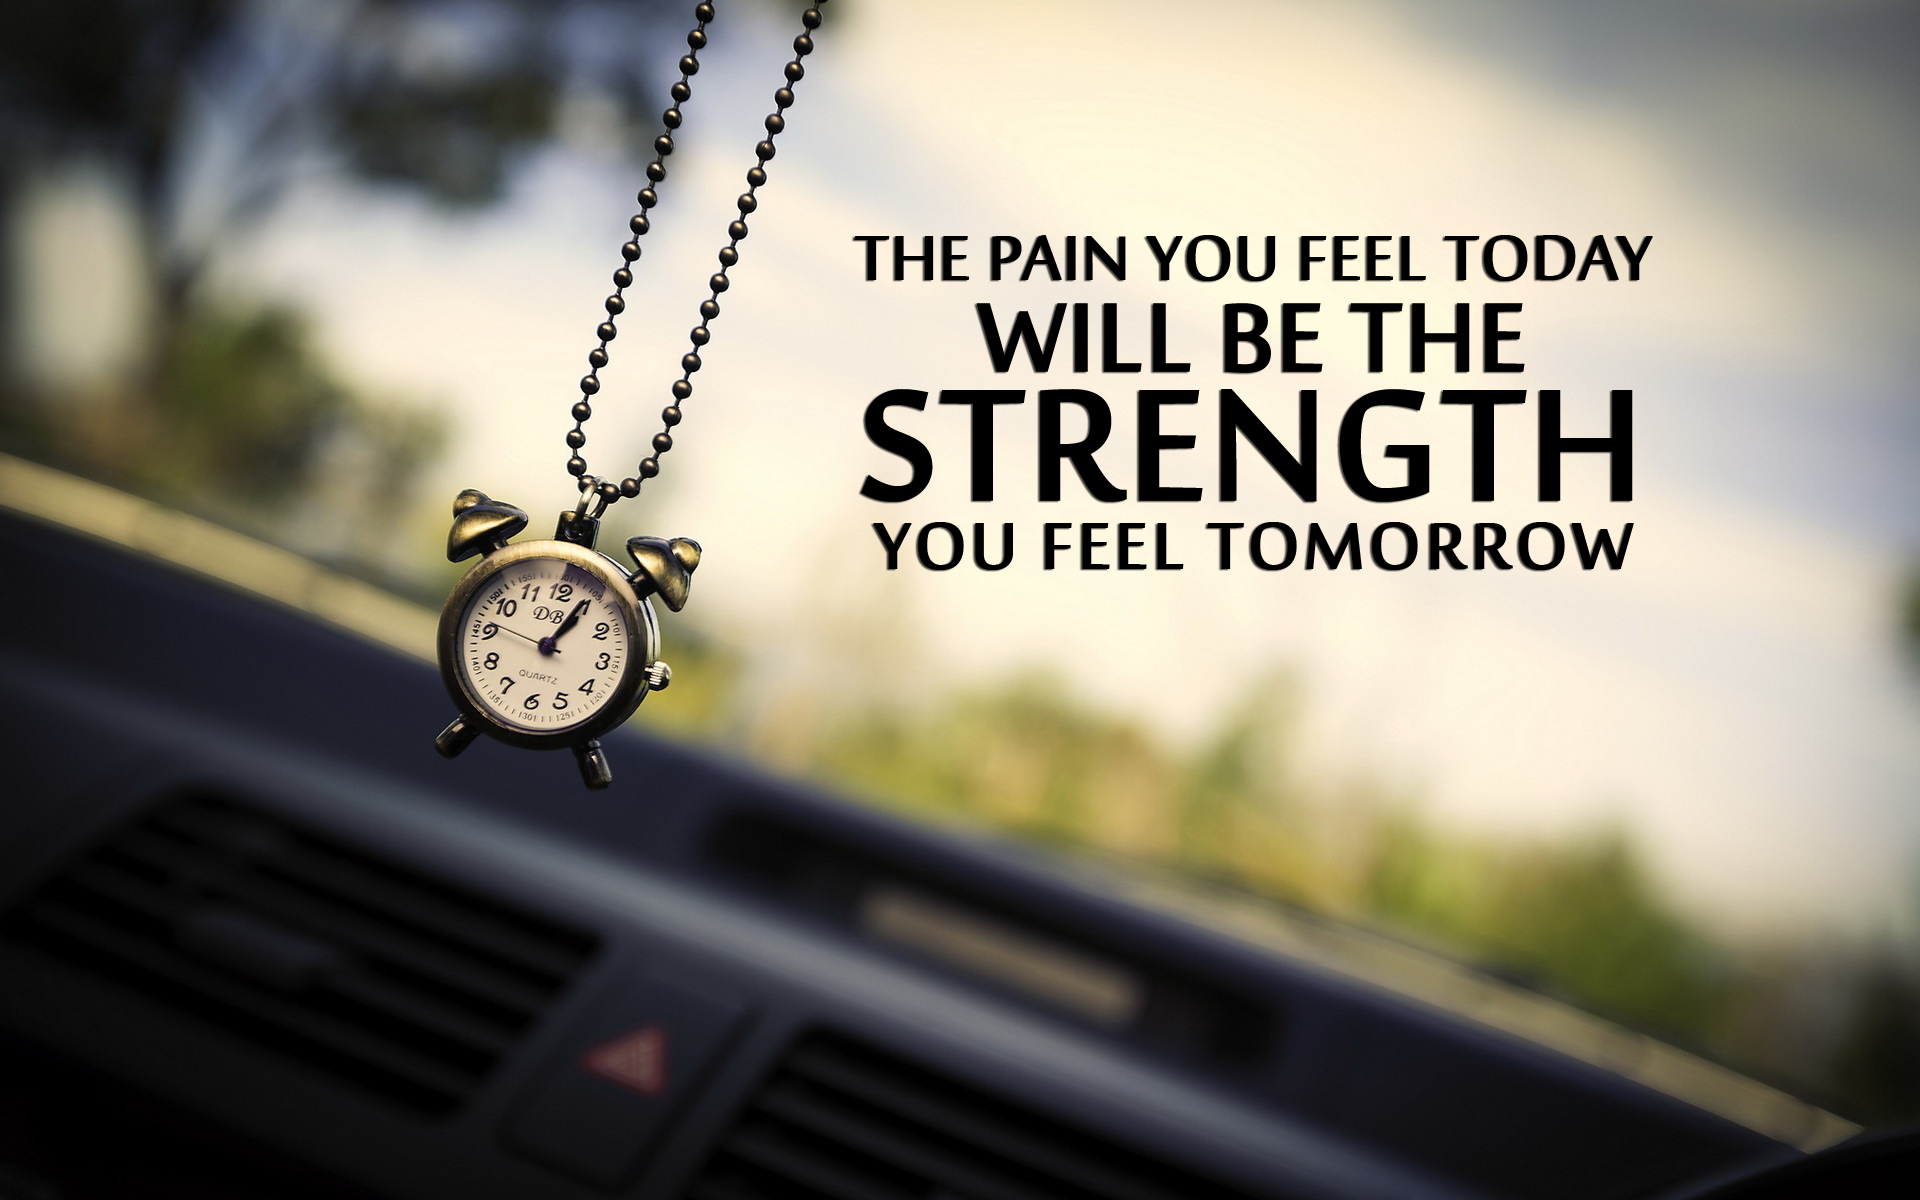 Motivational Wallpapers 46xm957 1280x1280: Download HD Wallpaper For Free